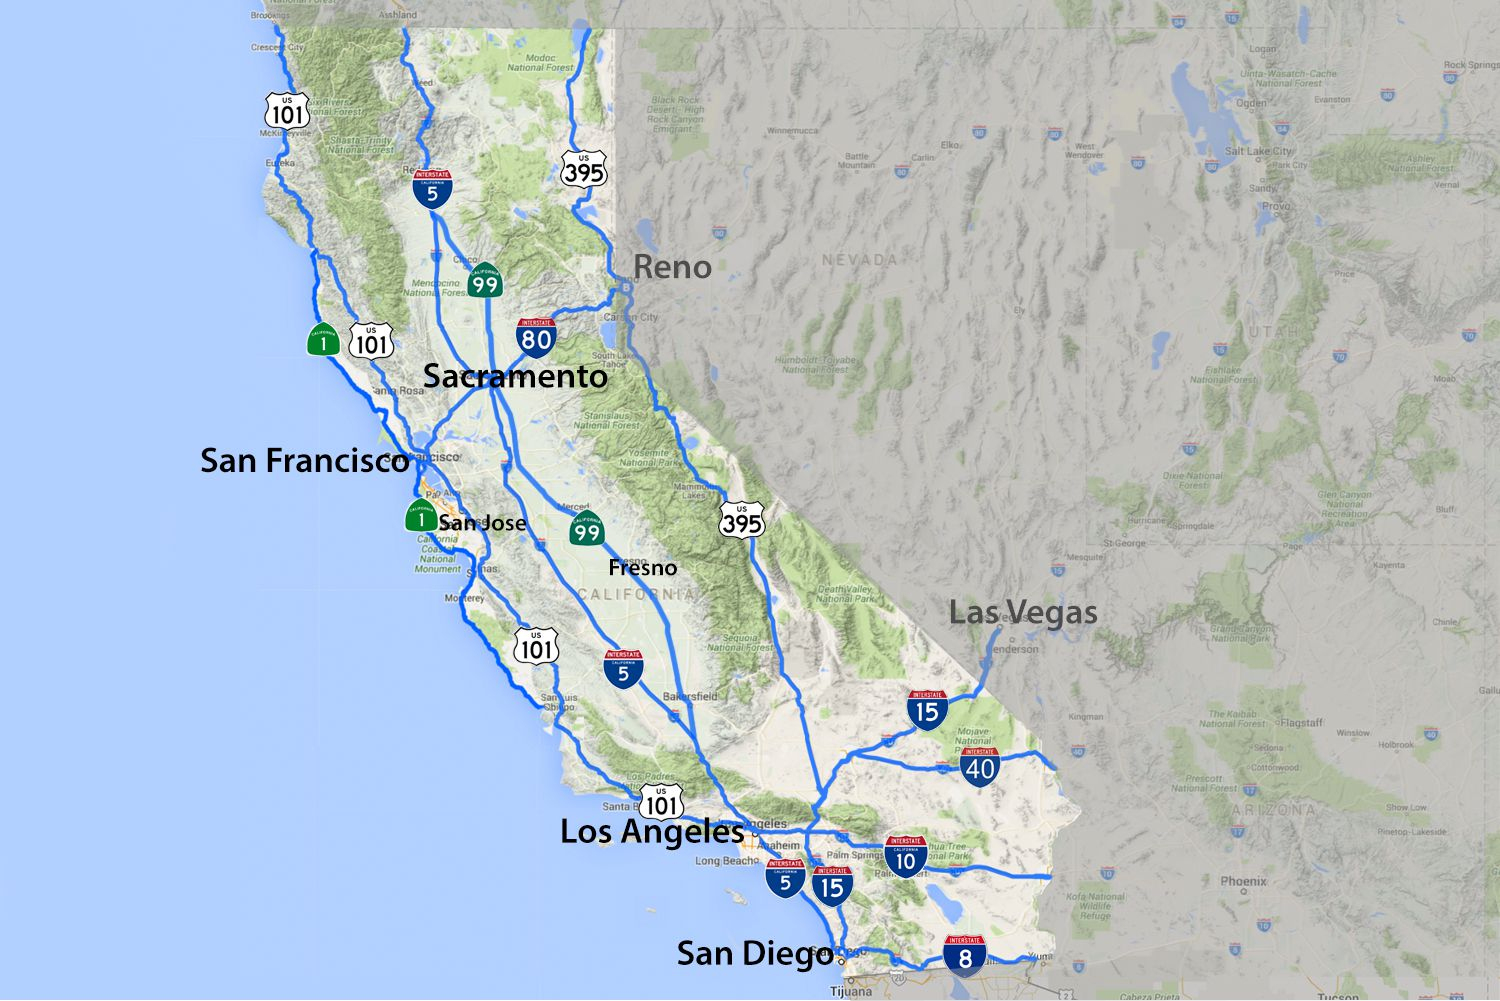 California Road Map - Highways And Major Routes - Map Of California Highways And Freeways